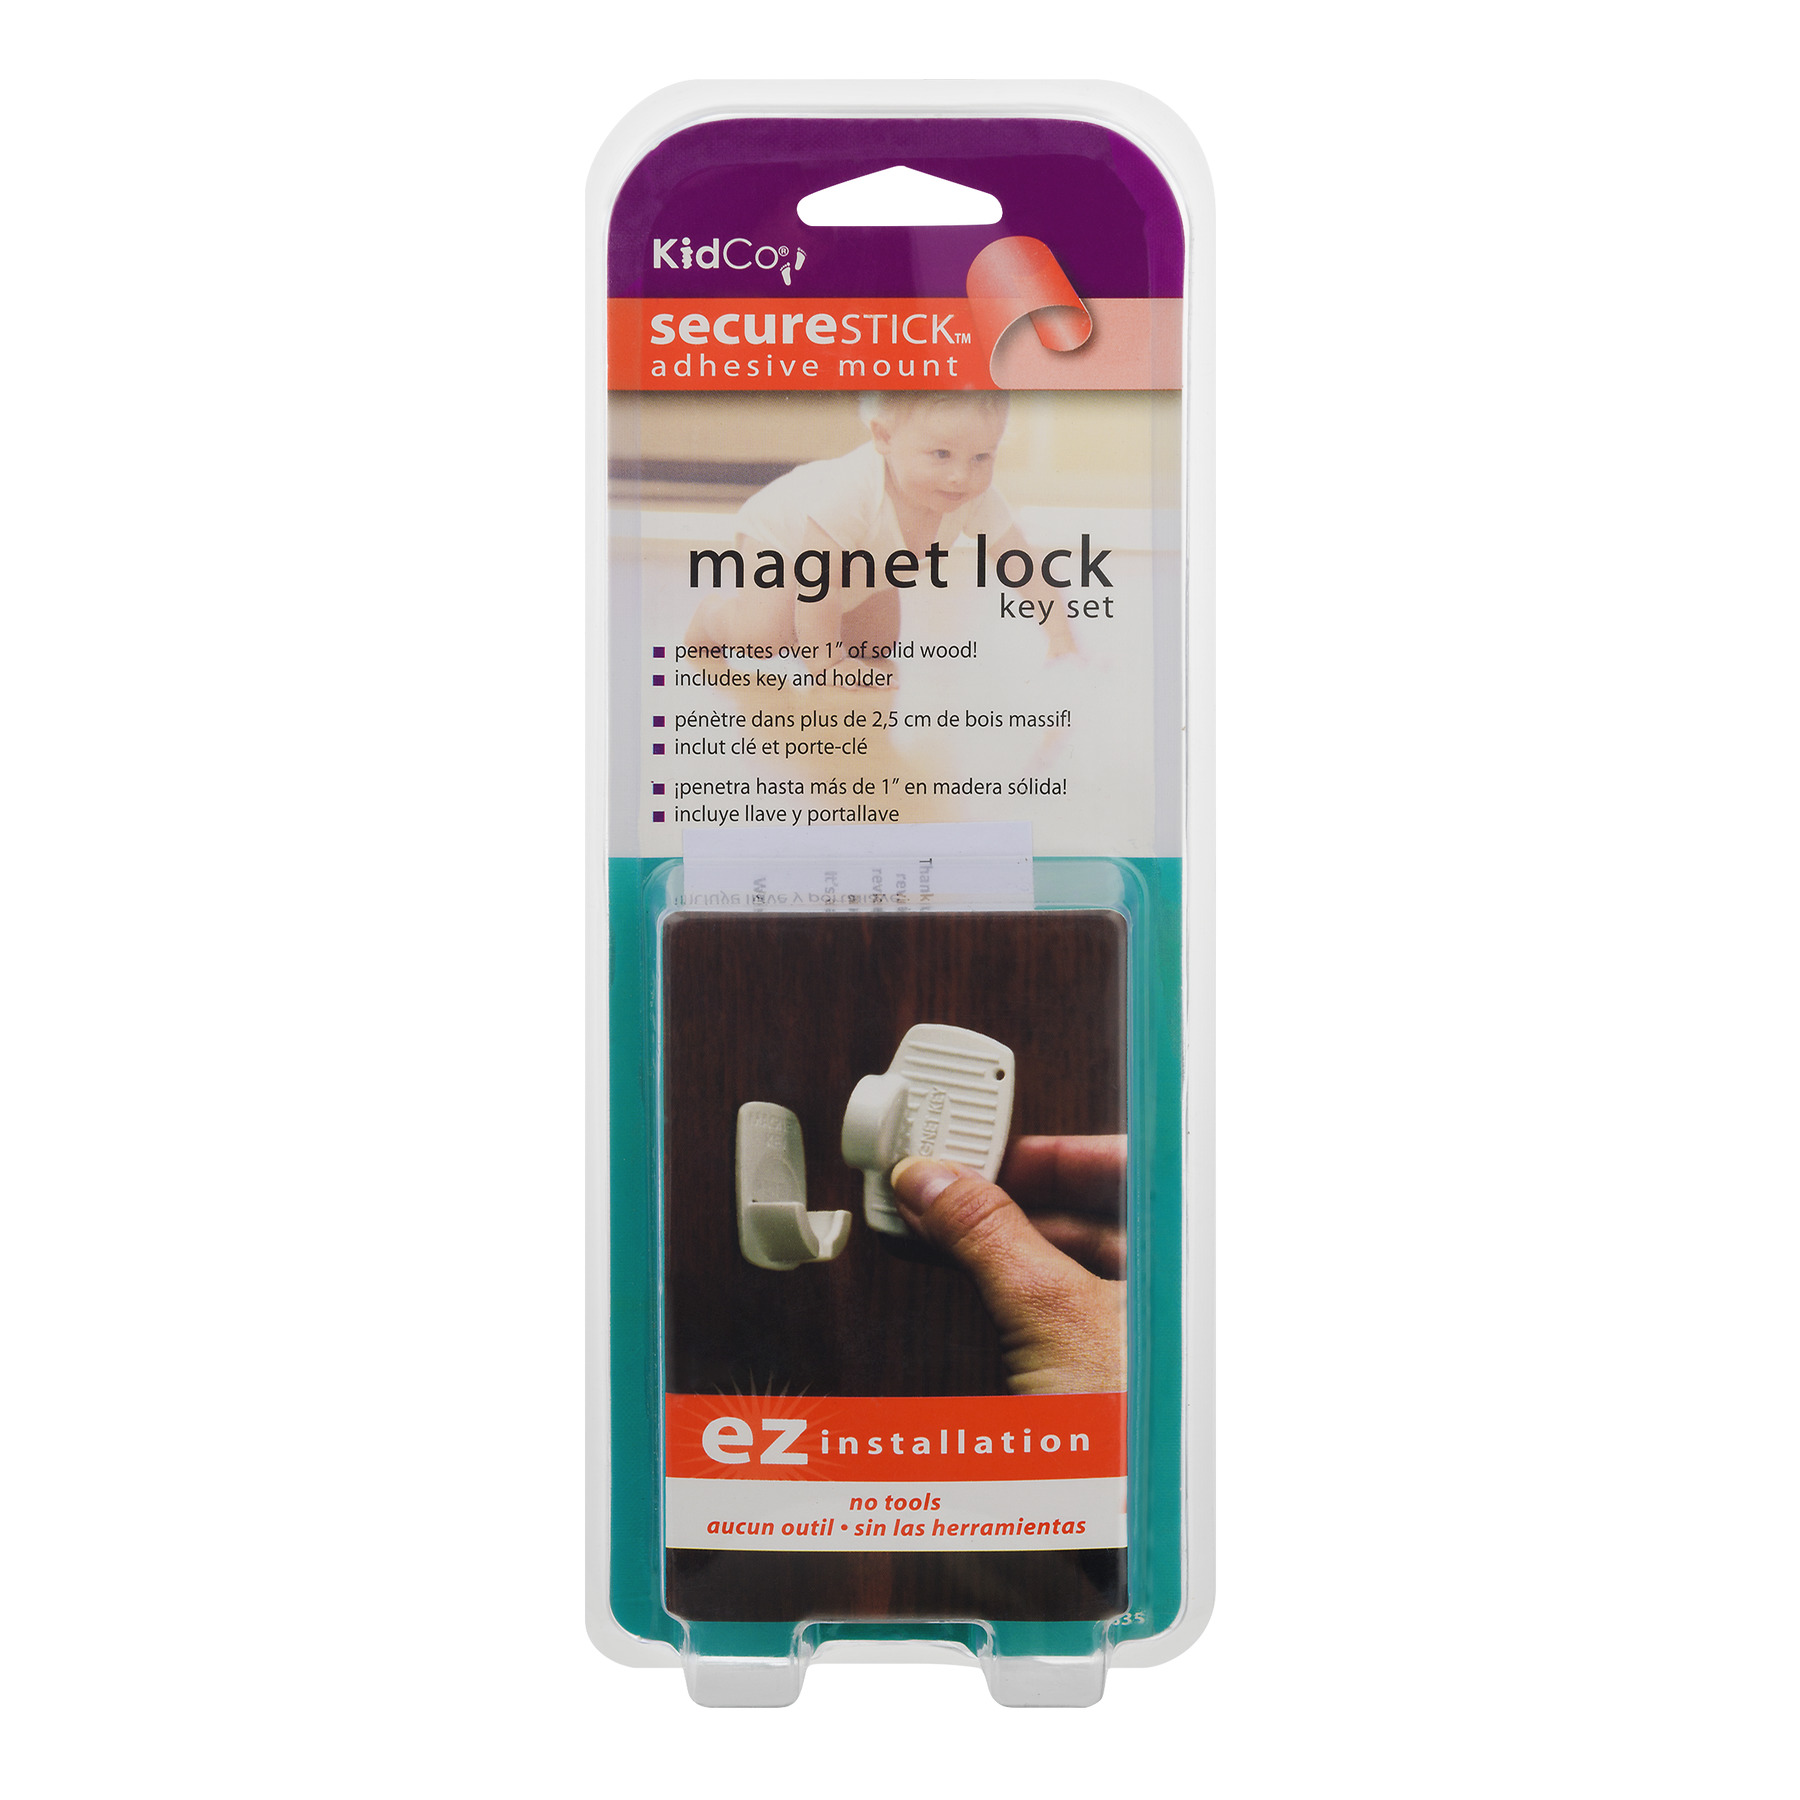 Kidco Magnet Lock Key Set, 1.0 CT